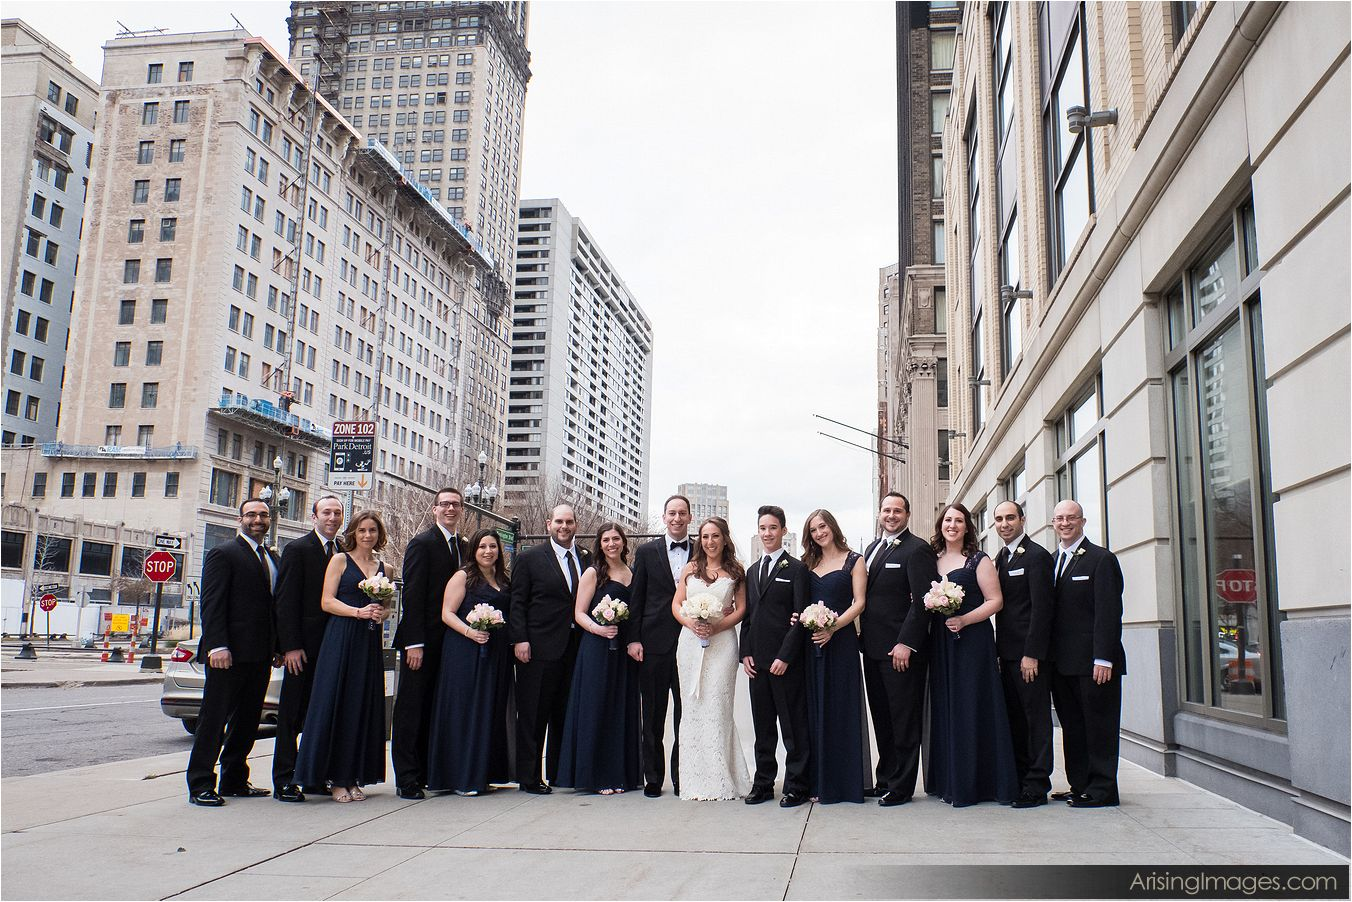 Westin Book Cadillac wedding photography